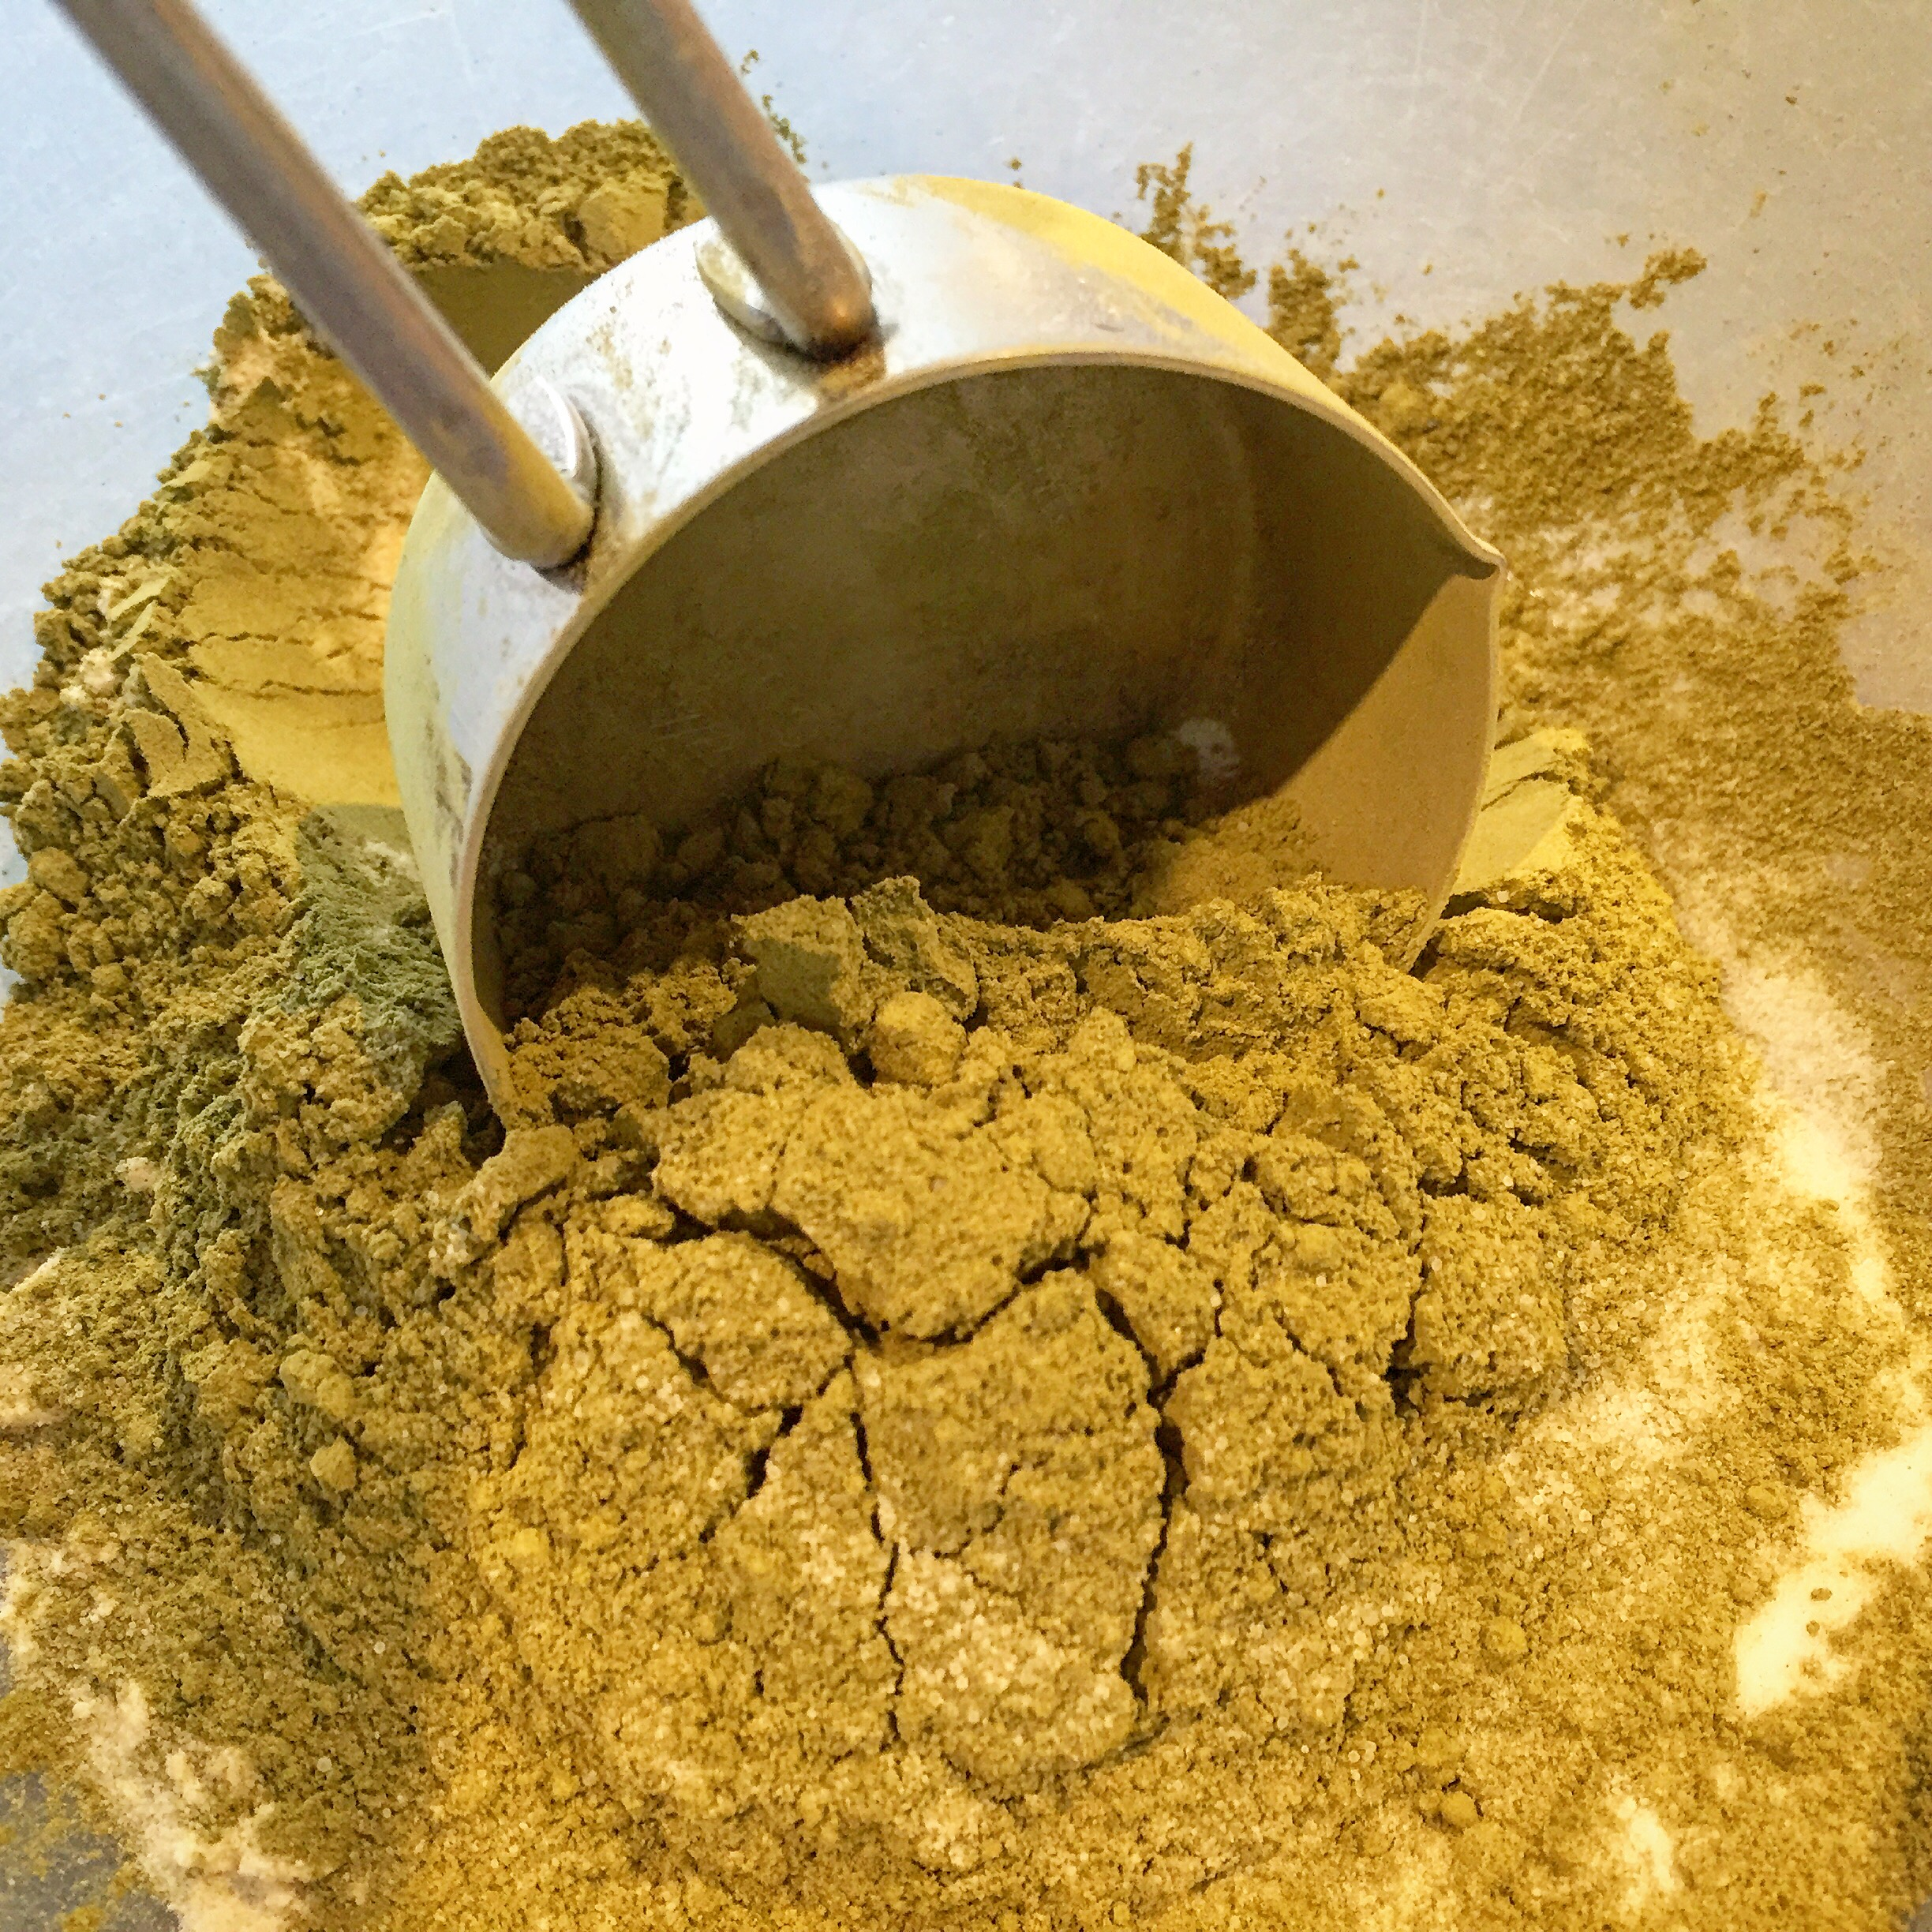 Measure 1/4 cup of Matcha Powder